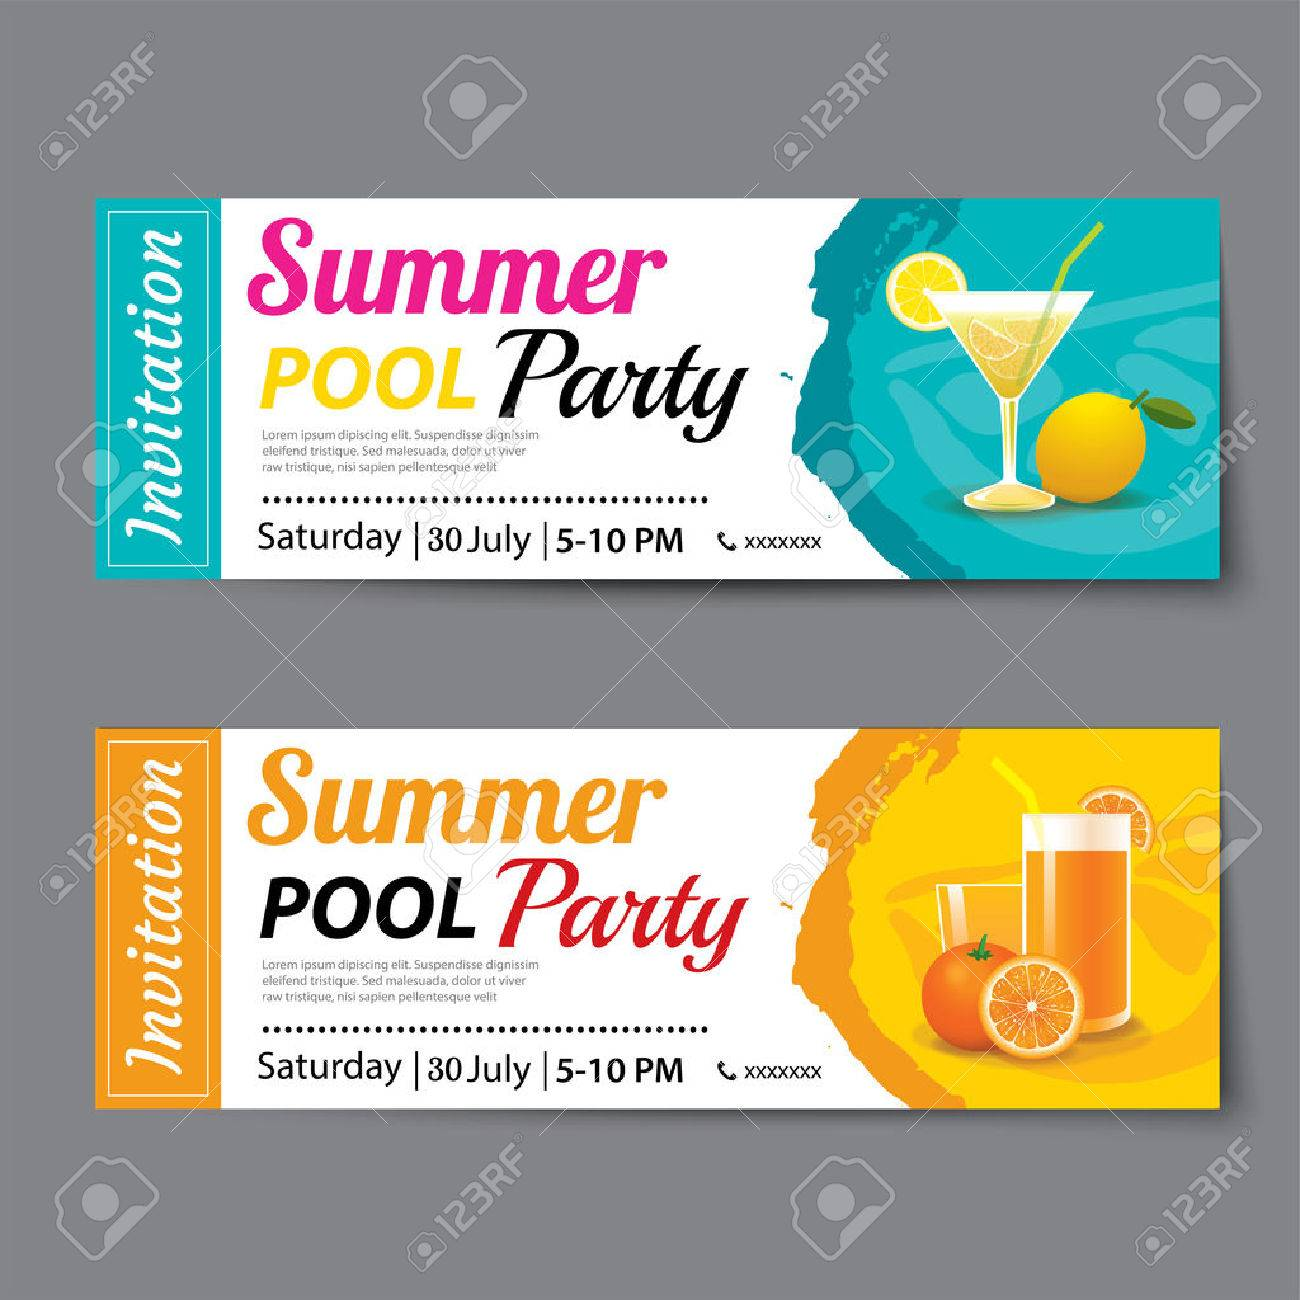 Amazing Summer Party Stock Photos Pictures Royalty Free Summer Party 61383318  Summer Pool Party Ticket Template Stock Vector Summer Partyhtml